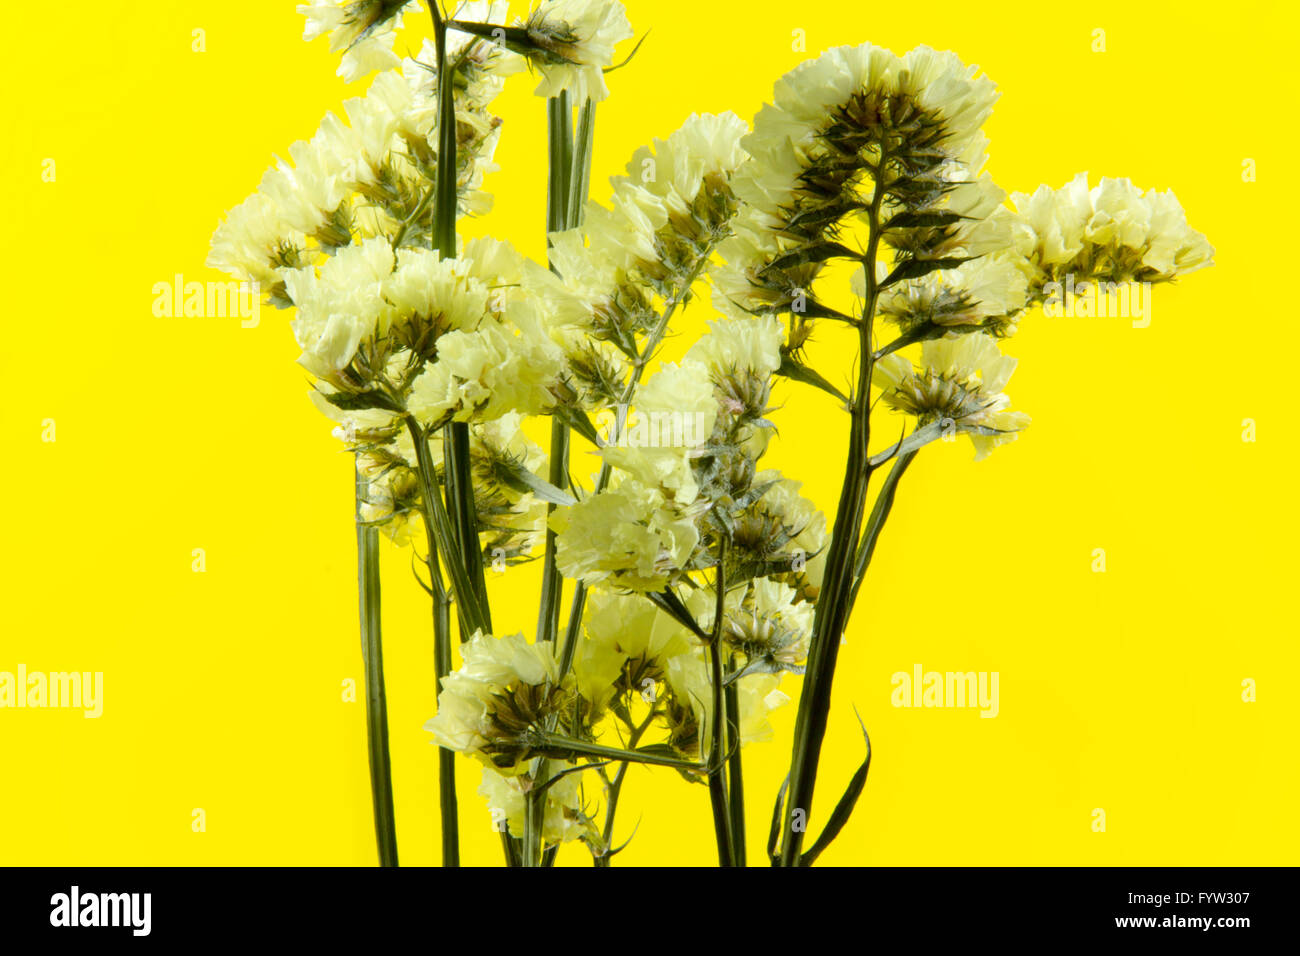 plant, flower, bloom, blossom, flora, dry flowers, yellow background - Stock Image